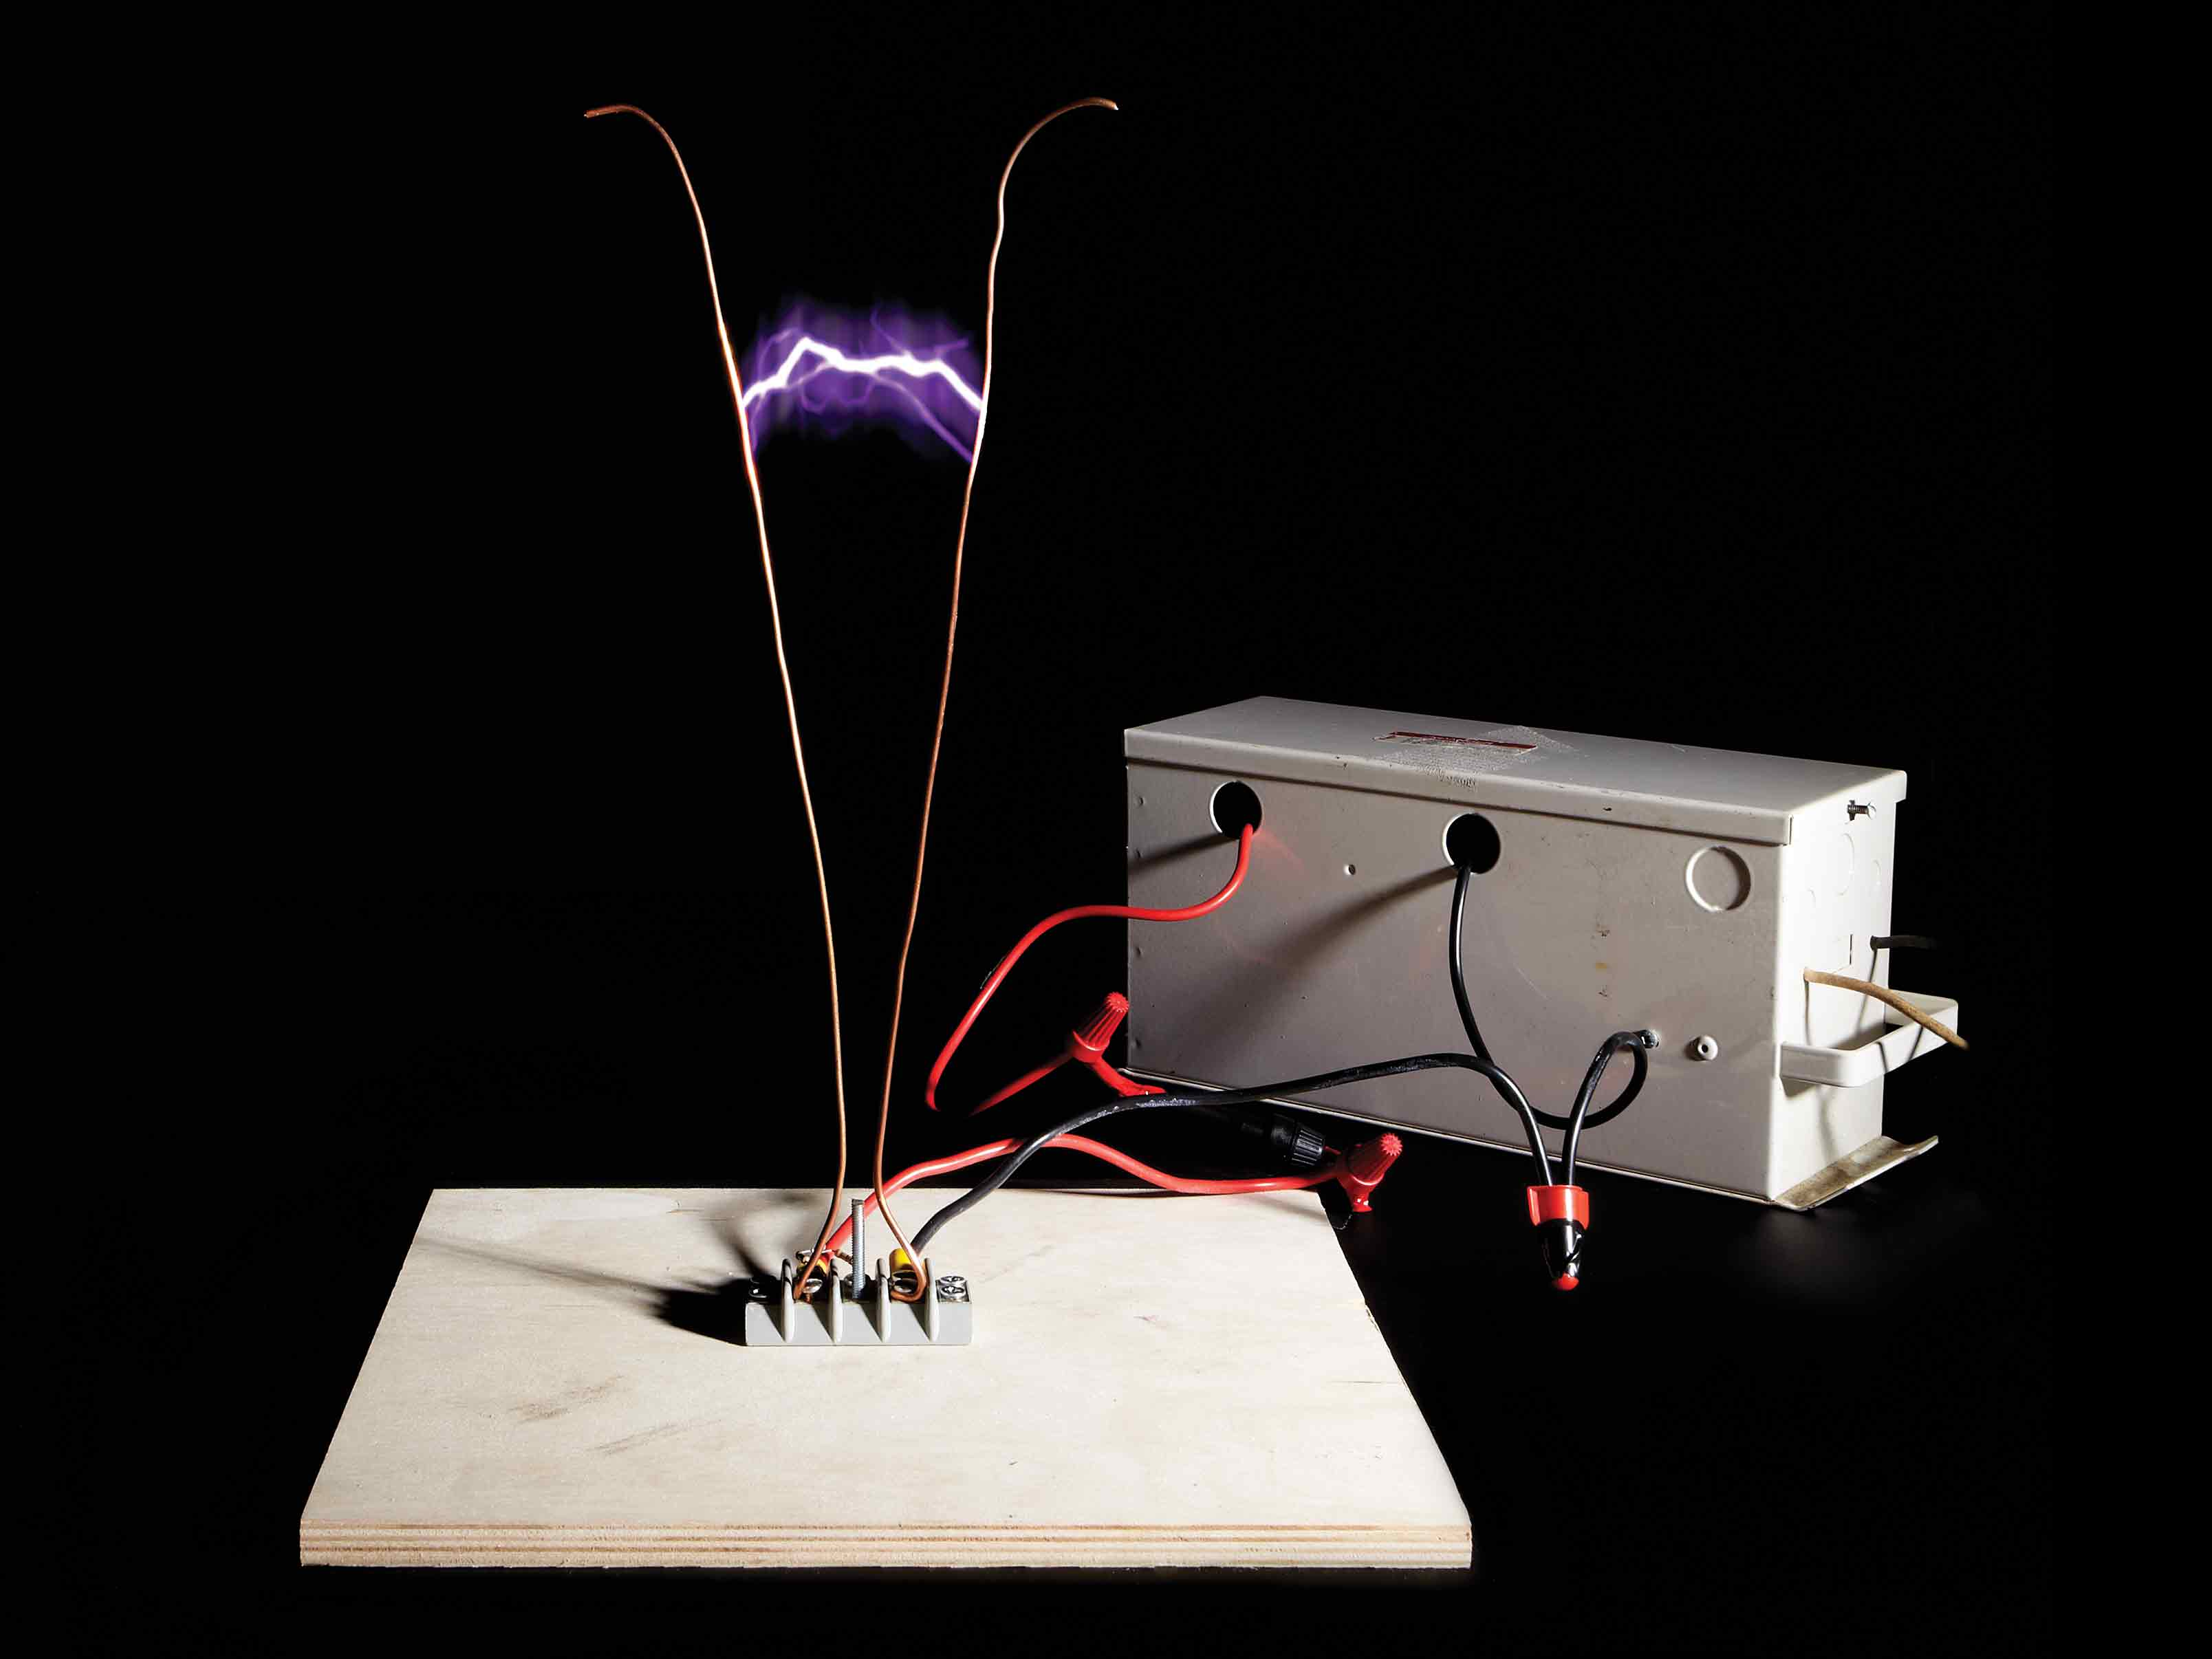 How To Build A Jacob's Ladder | Por Science Jacobs Electronics Wiring Diagram on jacobs electronics coil, jacobs electronics ignition system, jacobs electronics serial number,